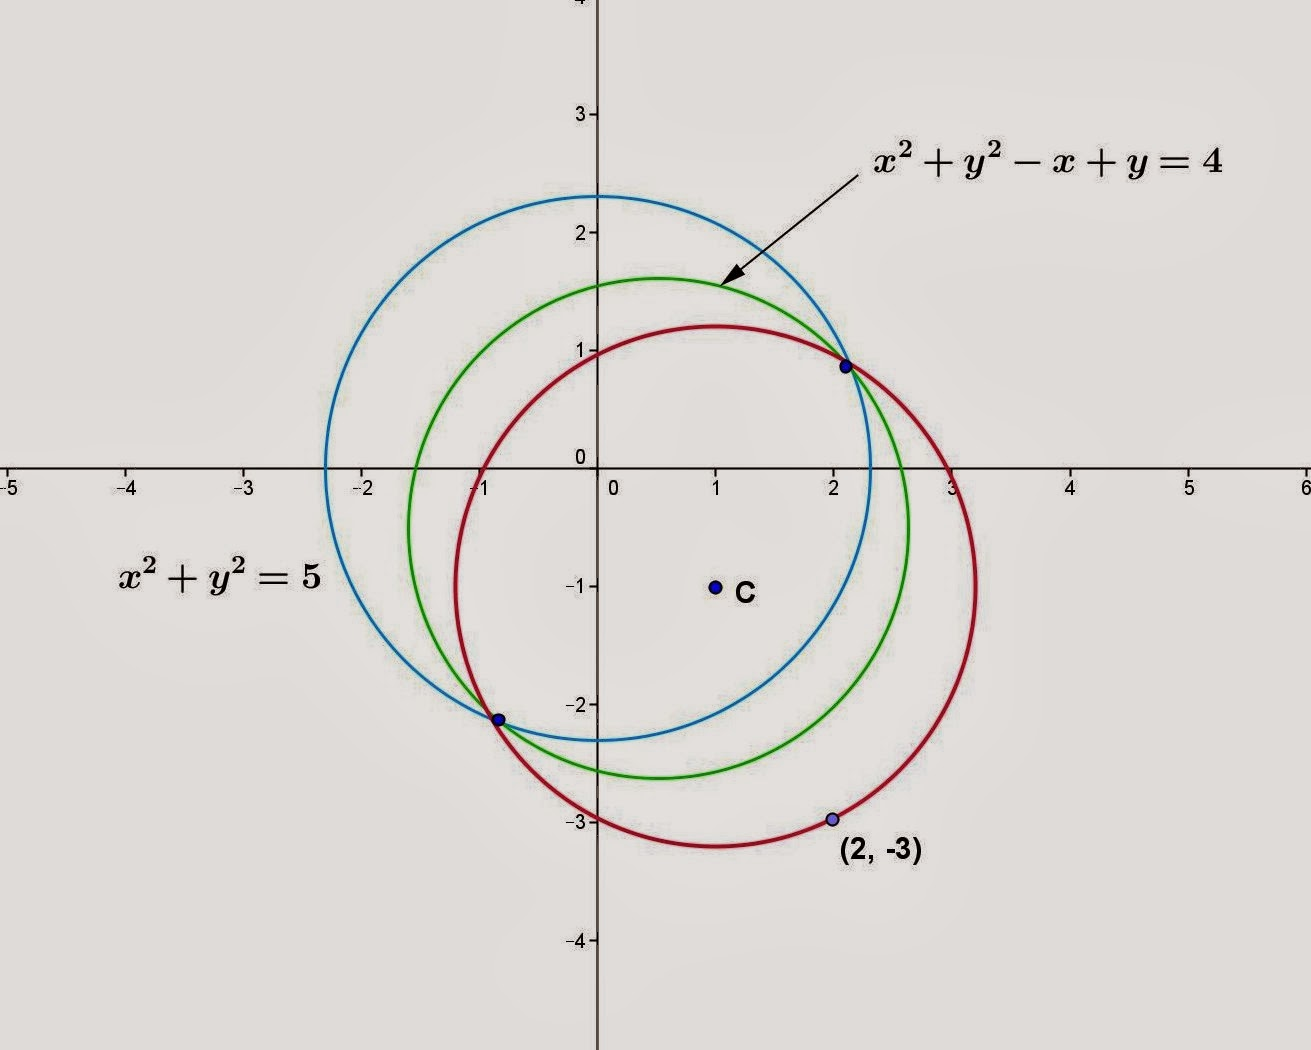 How To Solve The Equation Of A Circle For Y